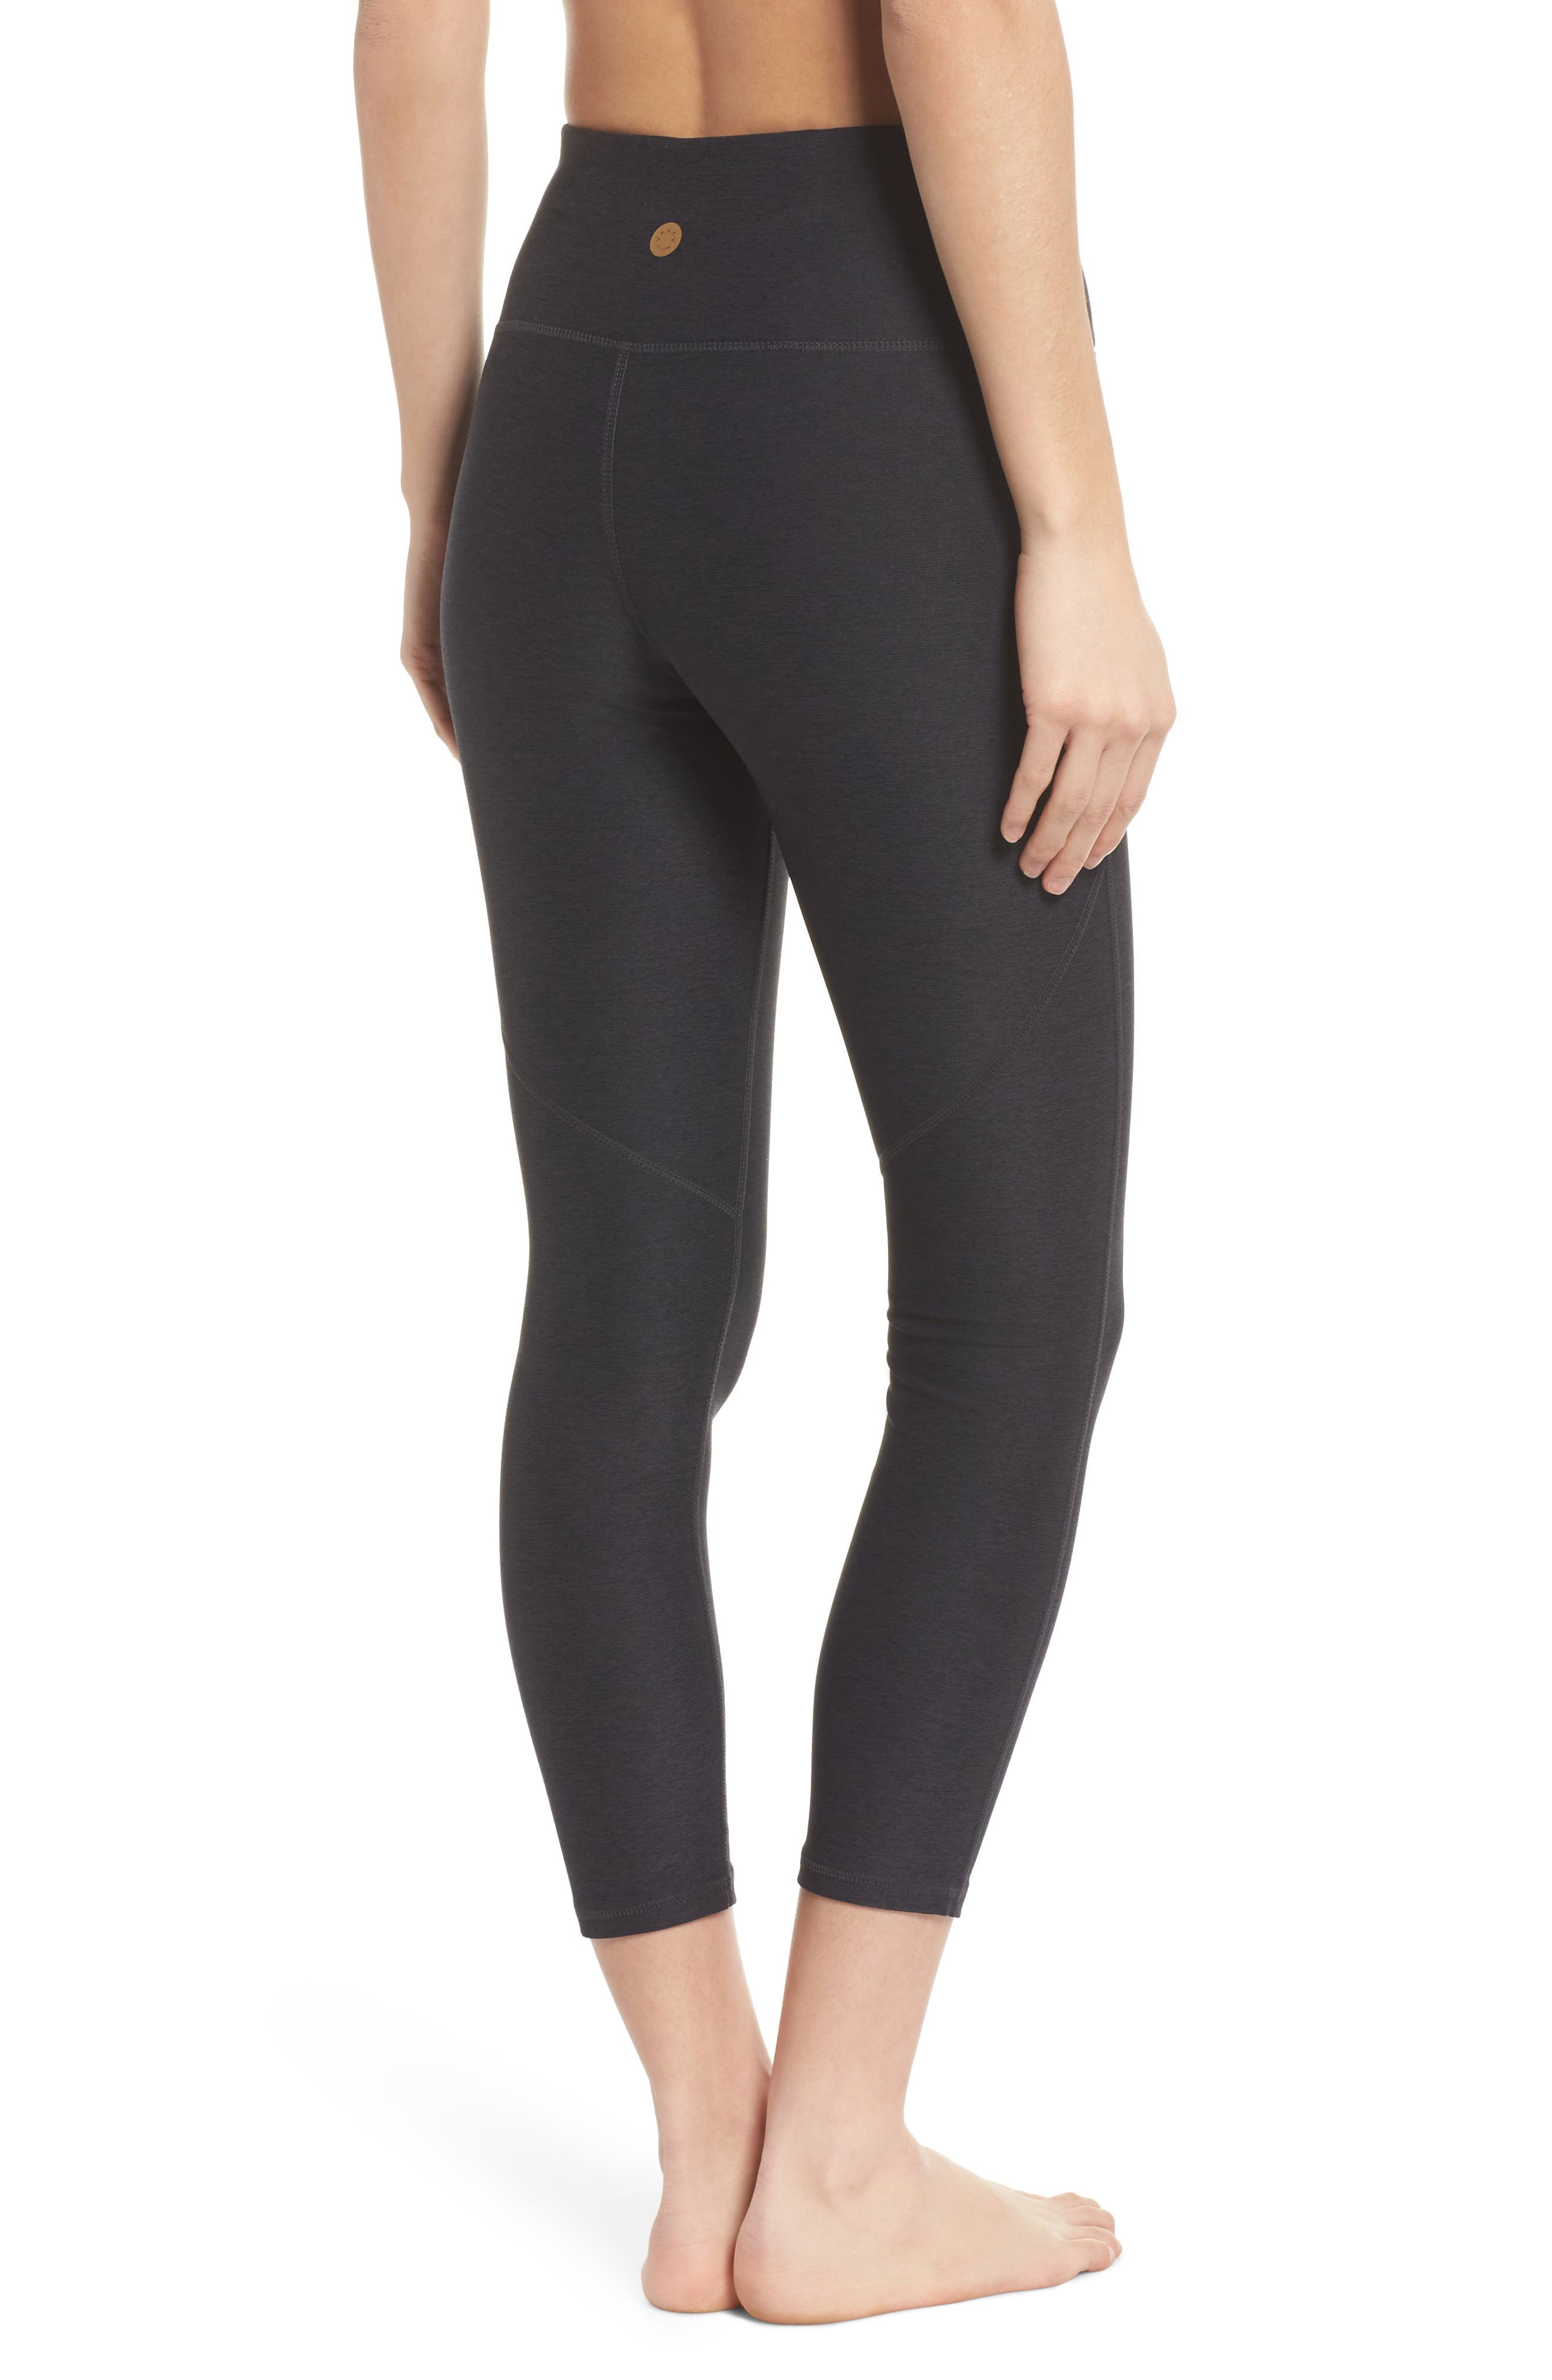 VARLEY,                             Everett High Waist Crop Tights,                             Alternate thumbnail 2, color,                             020